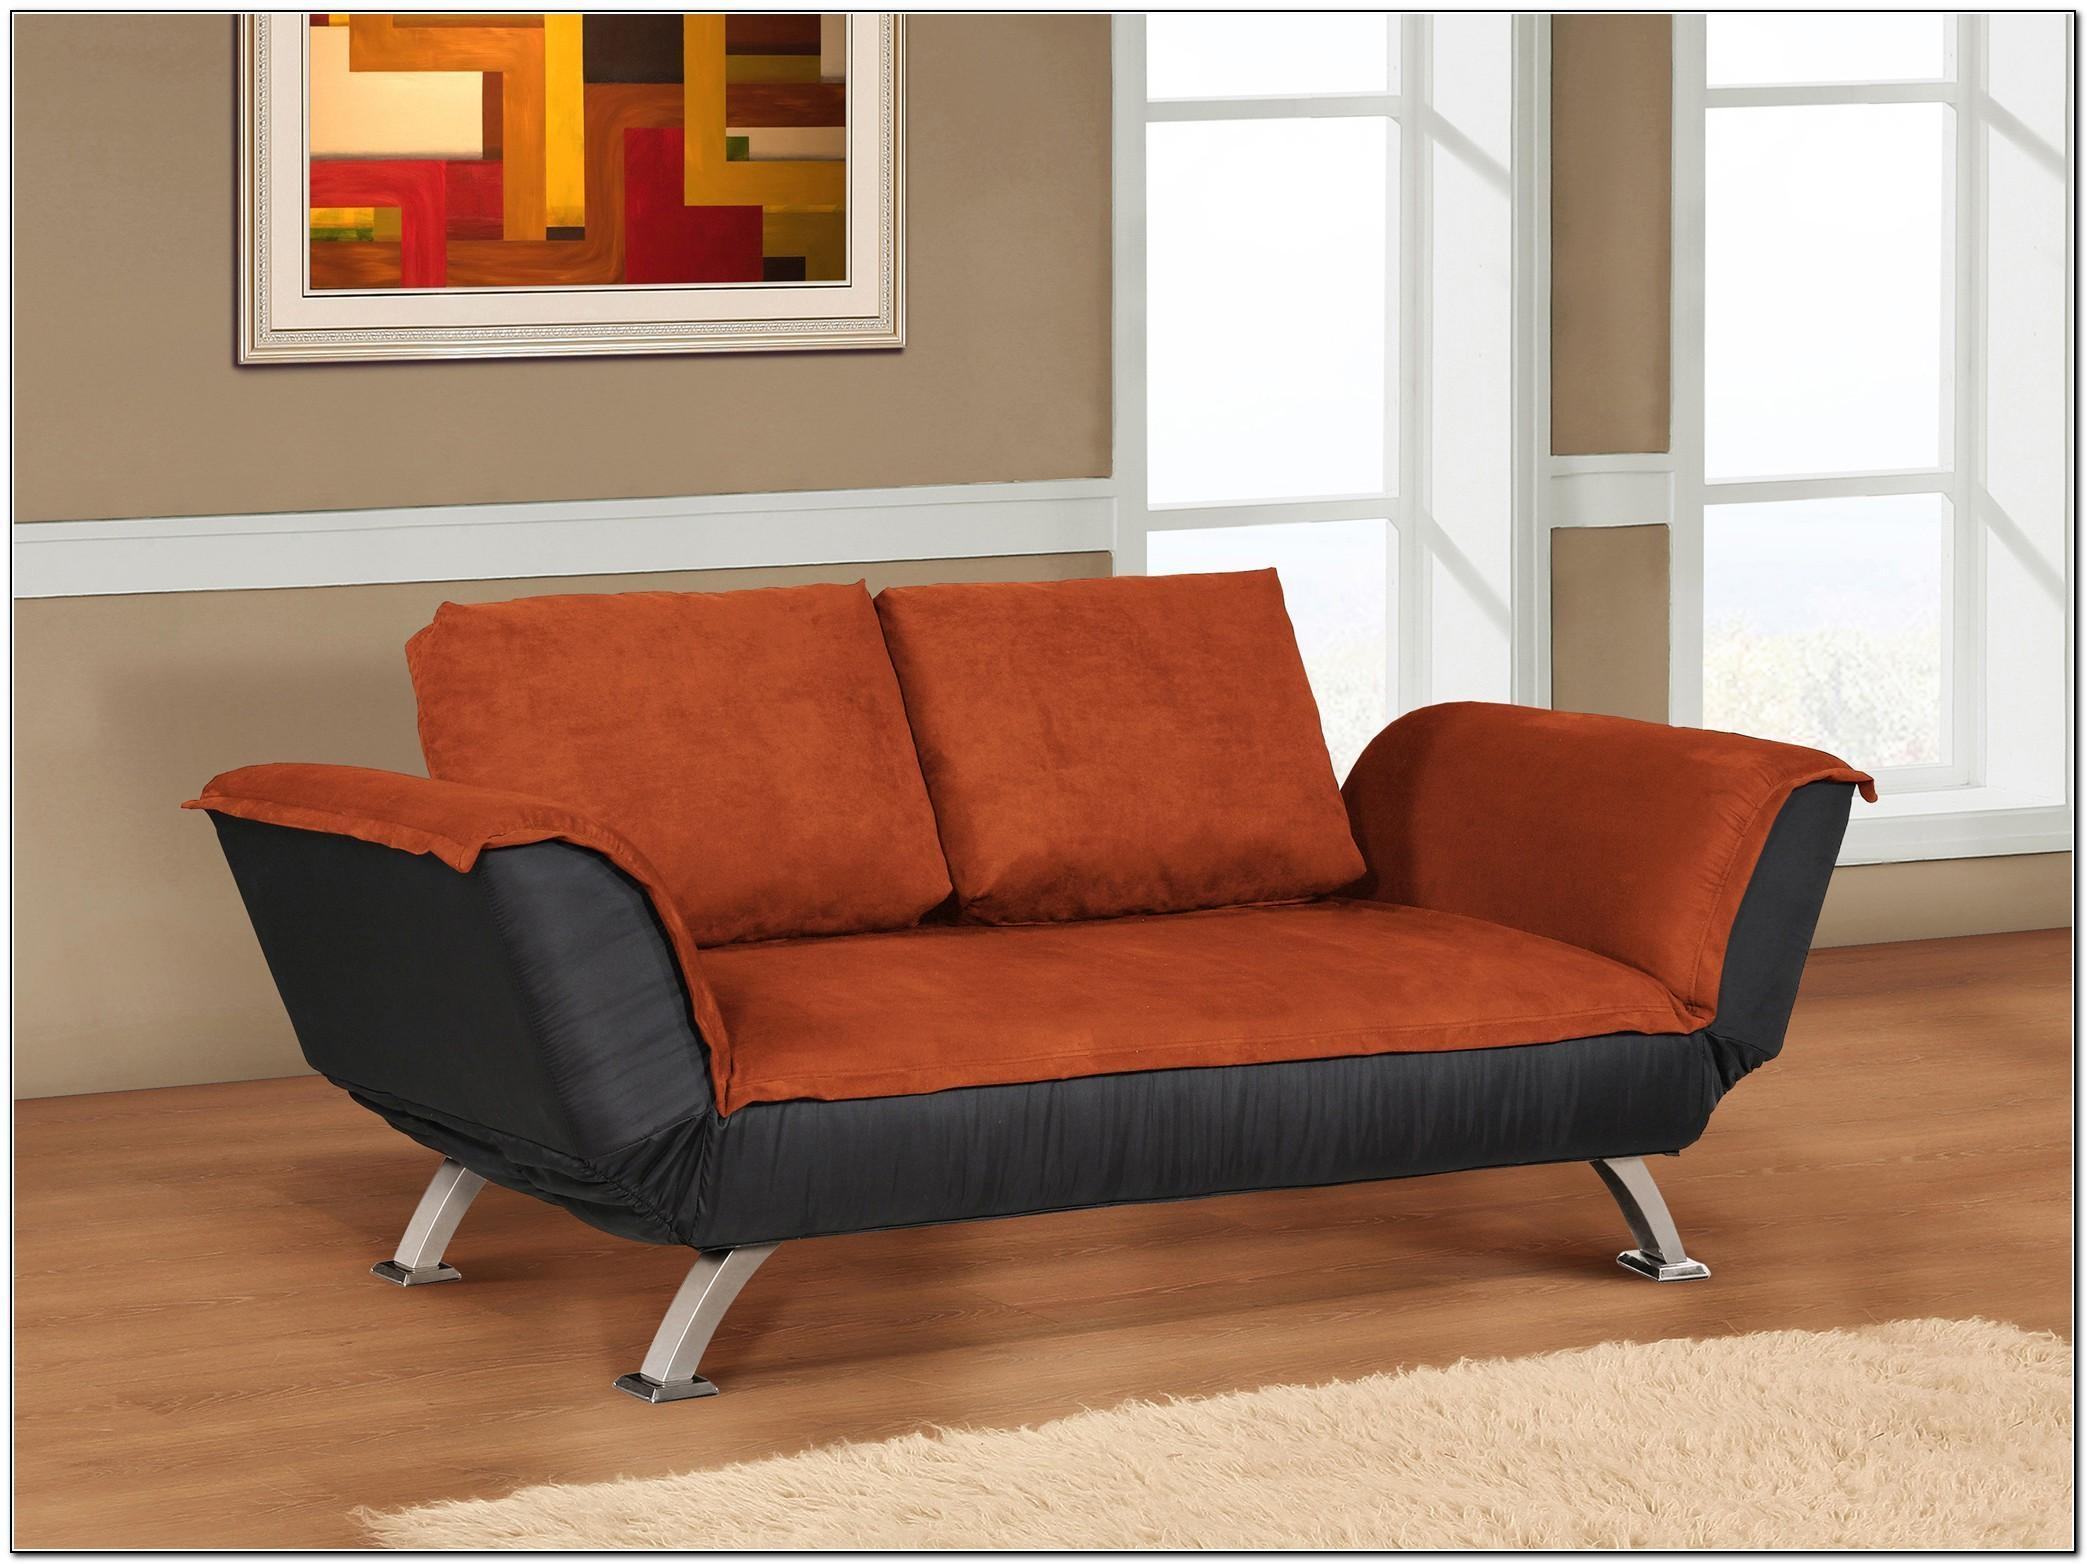 Unique Castro Convertible Sofa Bed 57 For Your Sofas And Couches Throughout Castro Convertible Sofa Beds (Image 20 of 20)